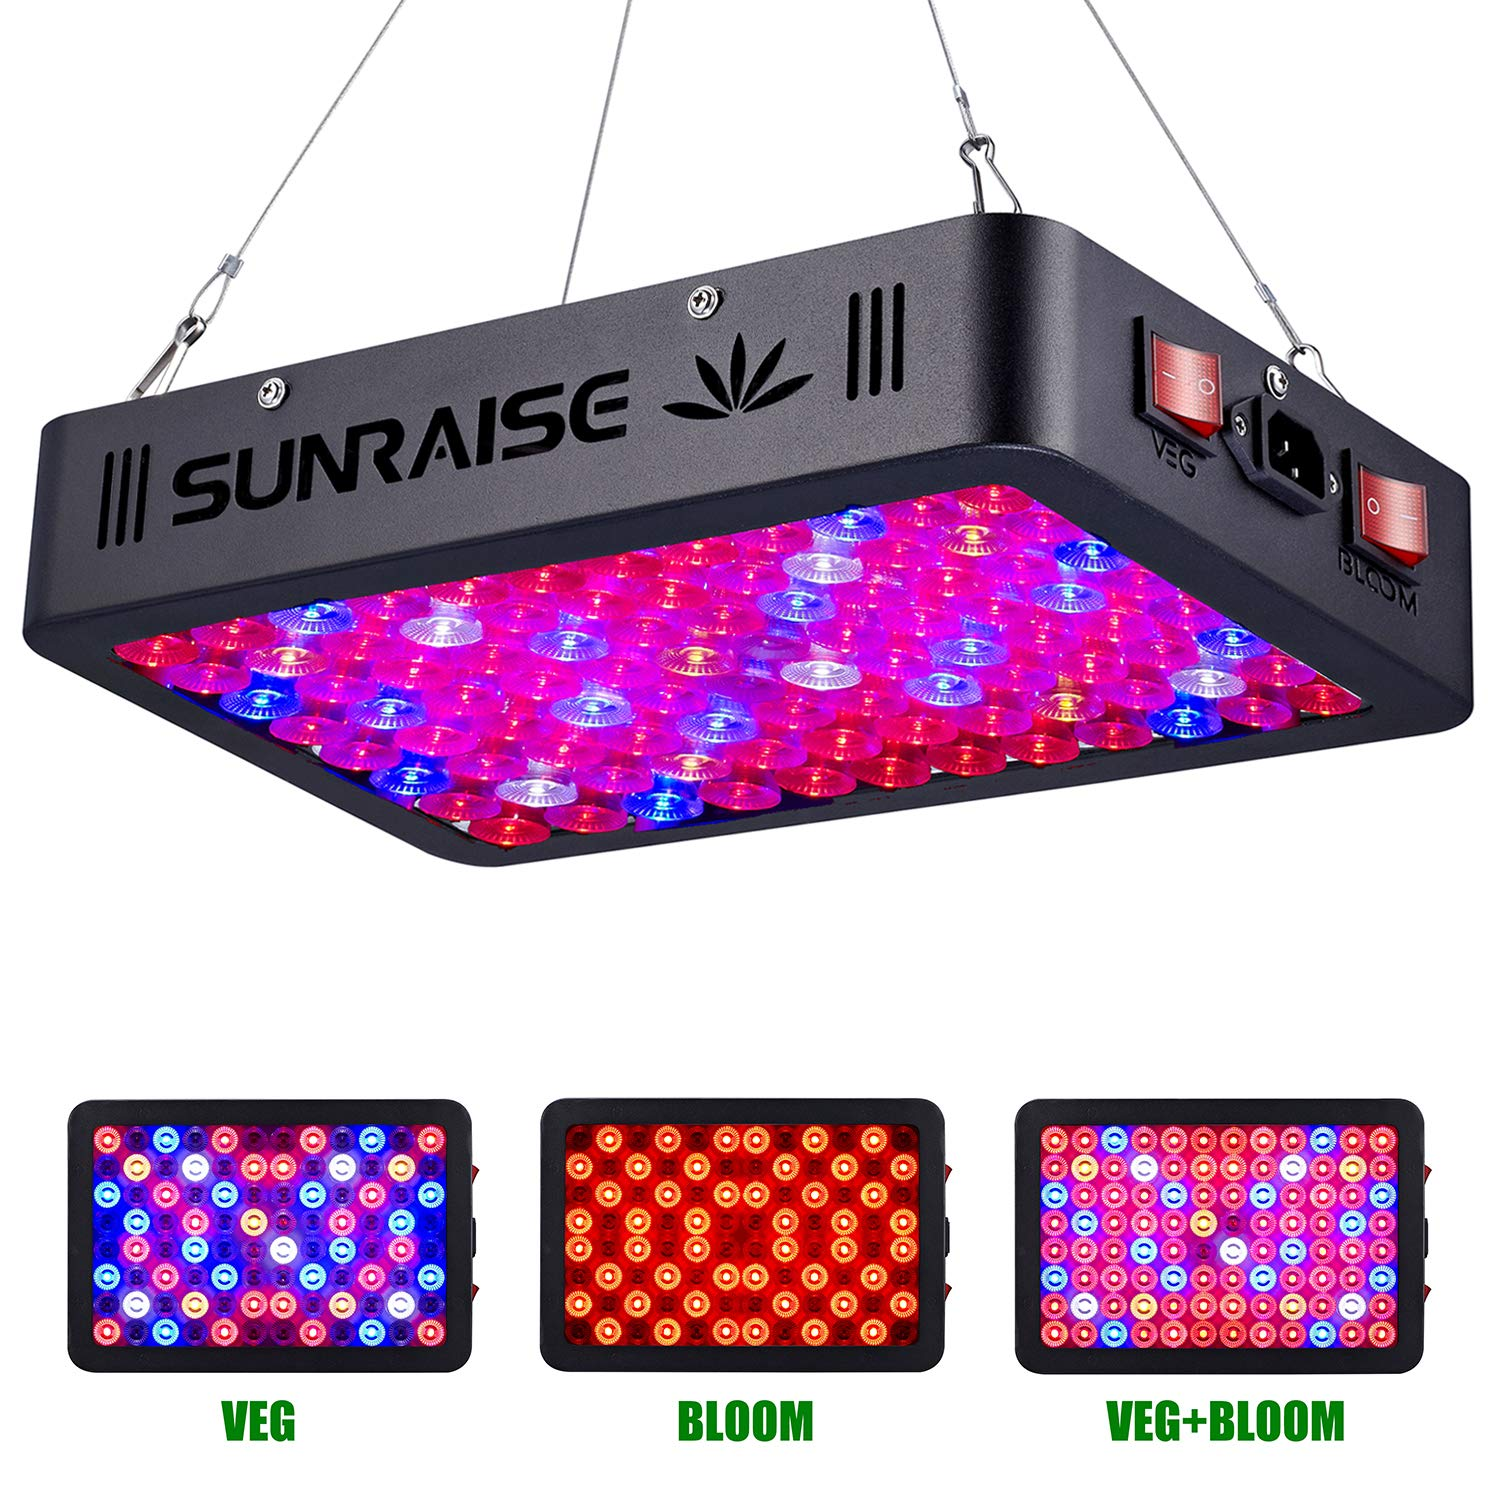 1000W LED Grow Light Full Spectrum for Indoor Plants Veg and Flower SUNRAISE LED Grow Lamp with Daisy Chain Triple-Chips LED (15W LED 96pcs) 81cSYOjD5YL